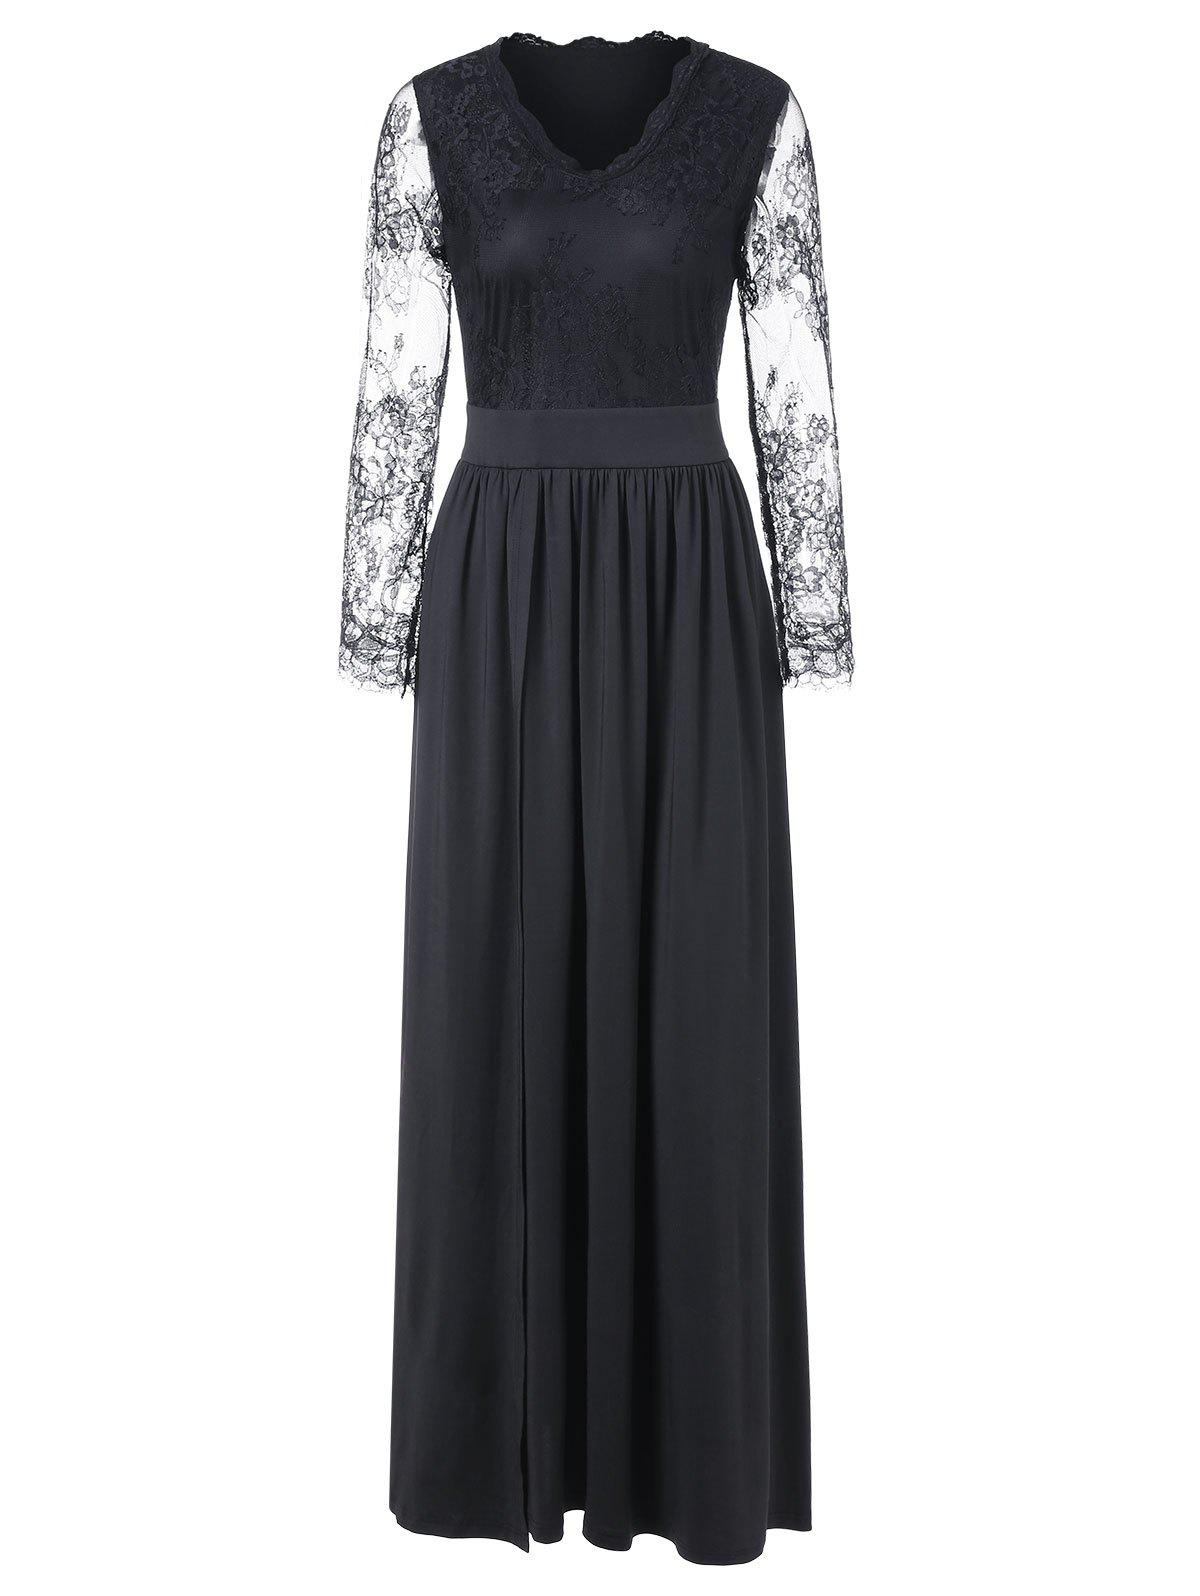 Discount Lace Sleeve Maxi Cocktail Dress